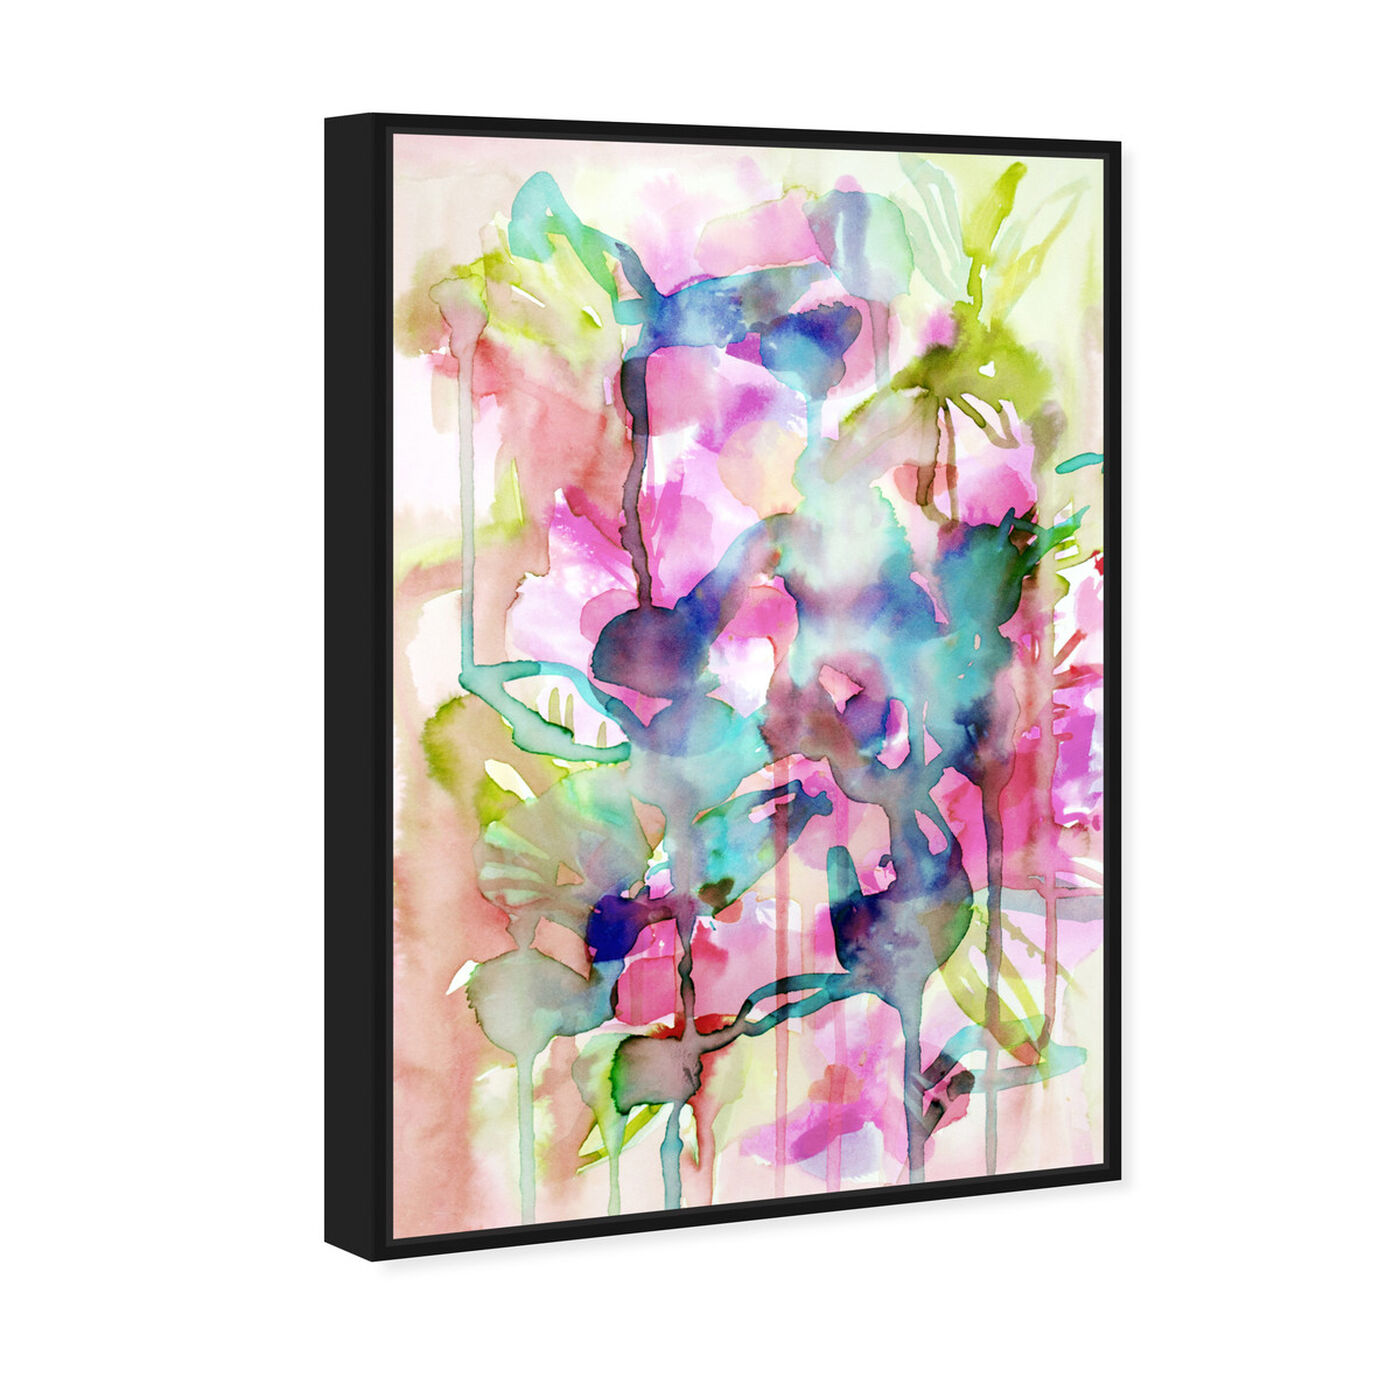 Angled view of Floral Spring featuring abstract and flowers art.